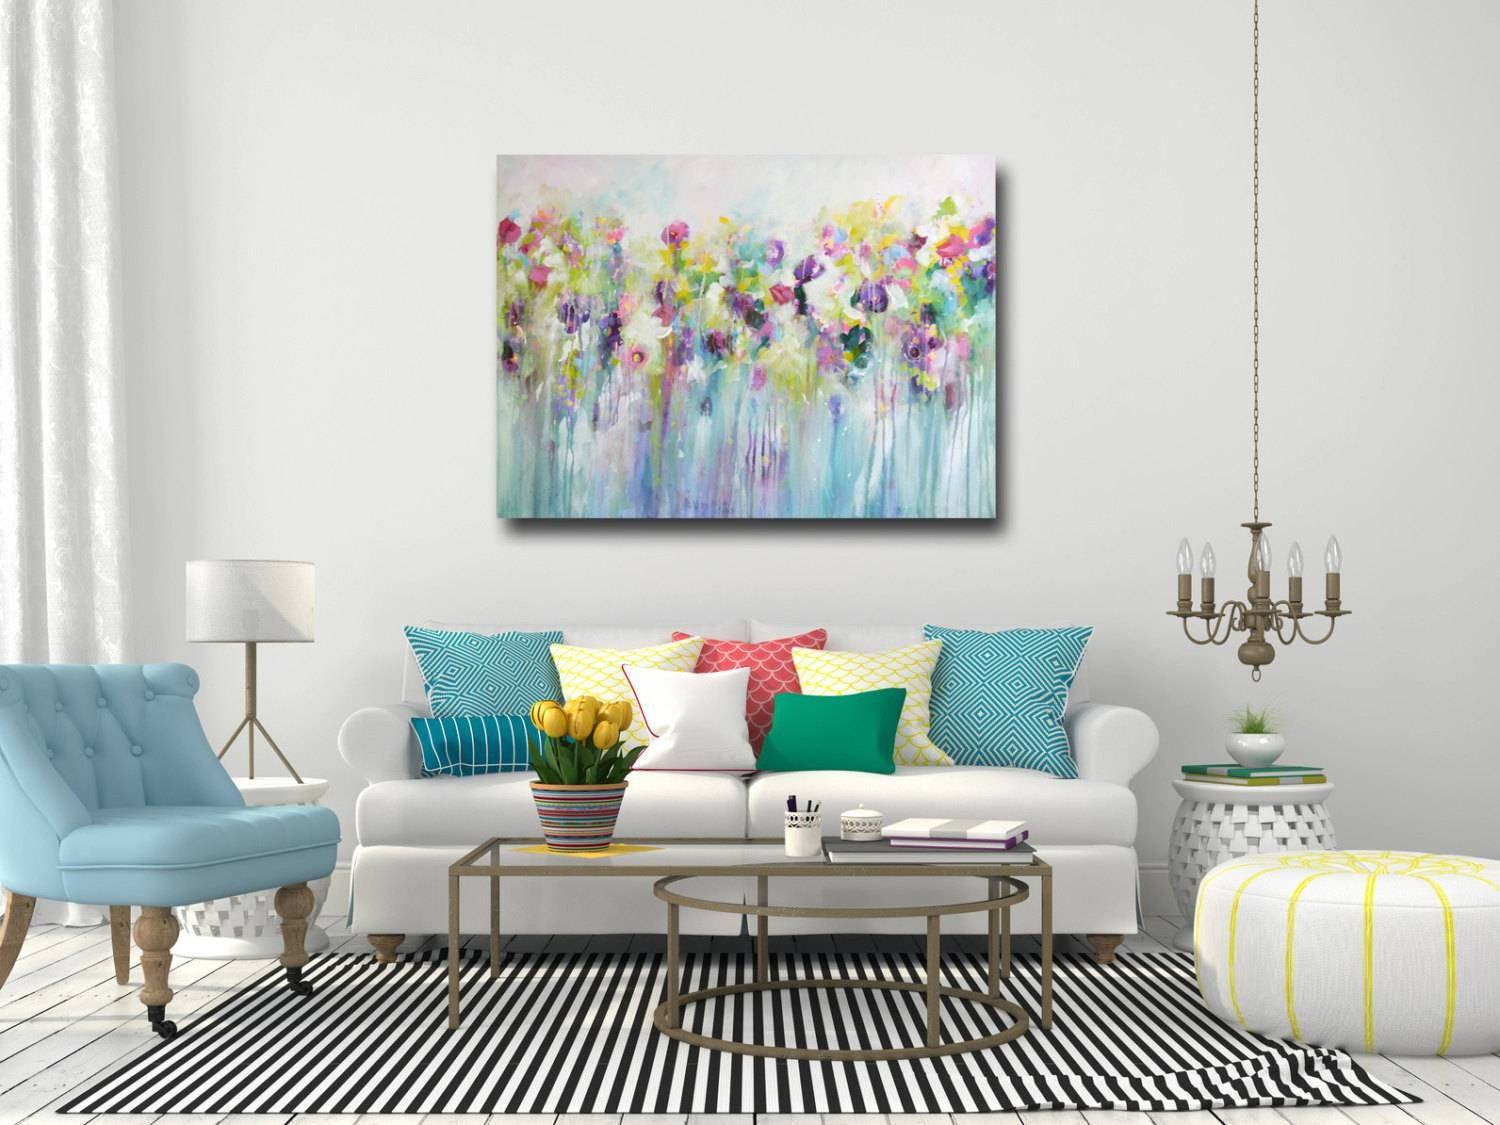 Glamorous Floral Canvas Art Modern Design Large Wall Art Canvas Regarding Most Up To Date Glamorous Wall Art (View 11 of 30)